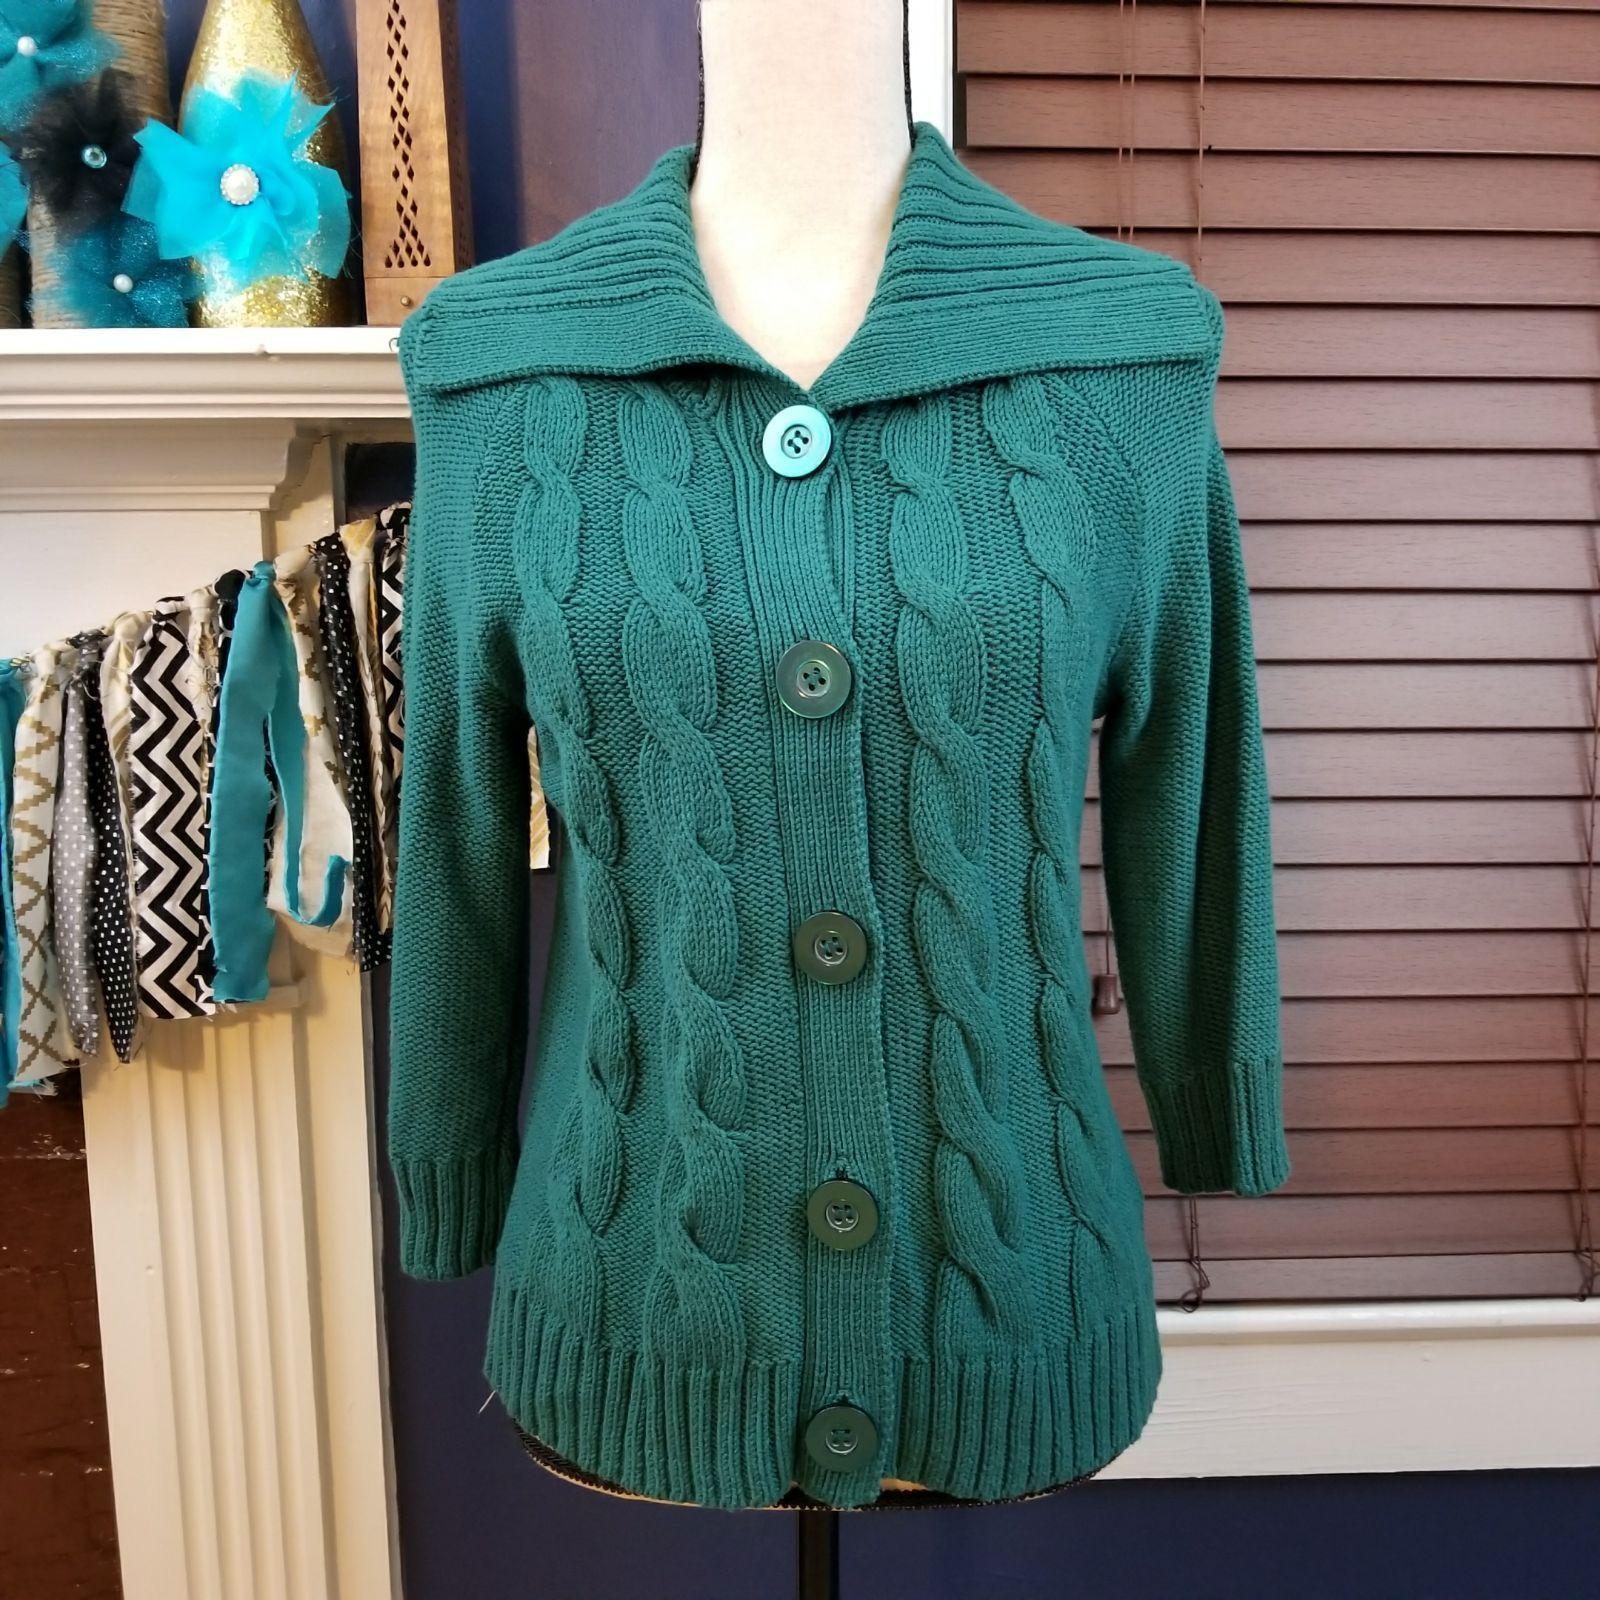 NWT Green chunky sweater cardigan SMALL - Mercari: BUY & SELL ...